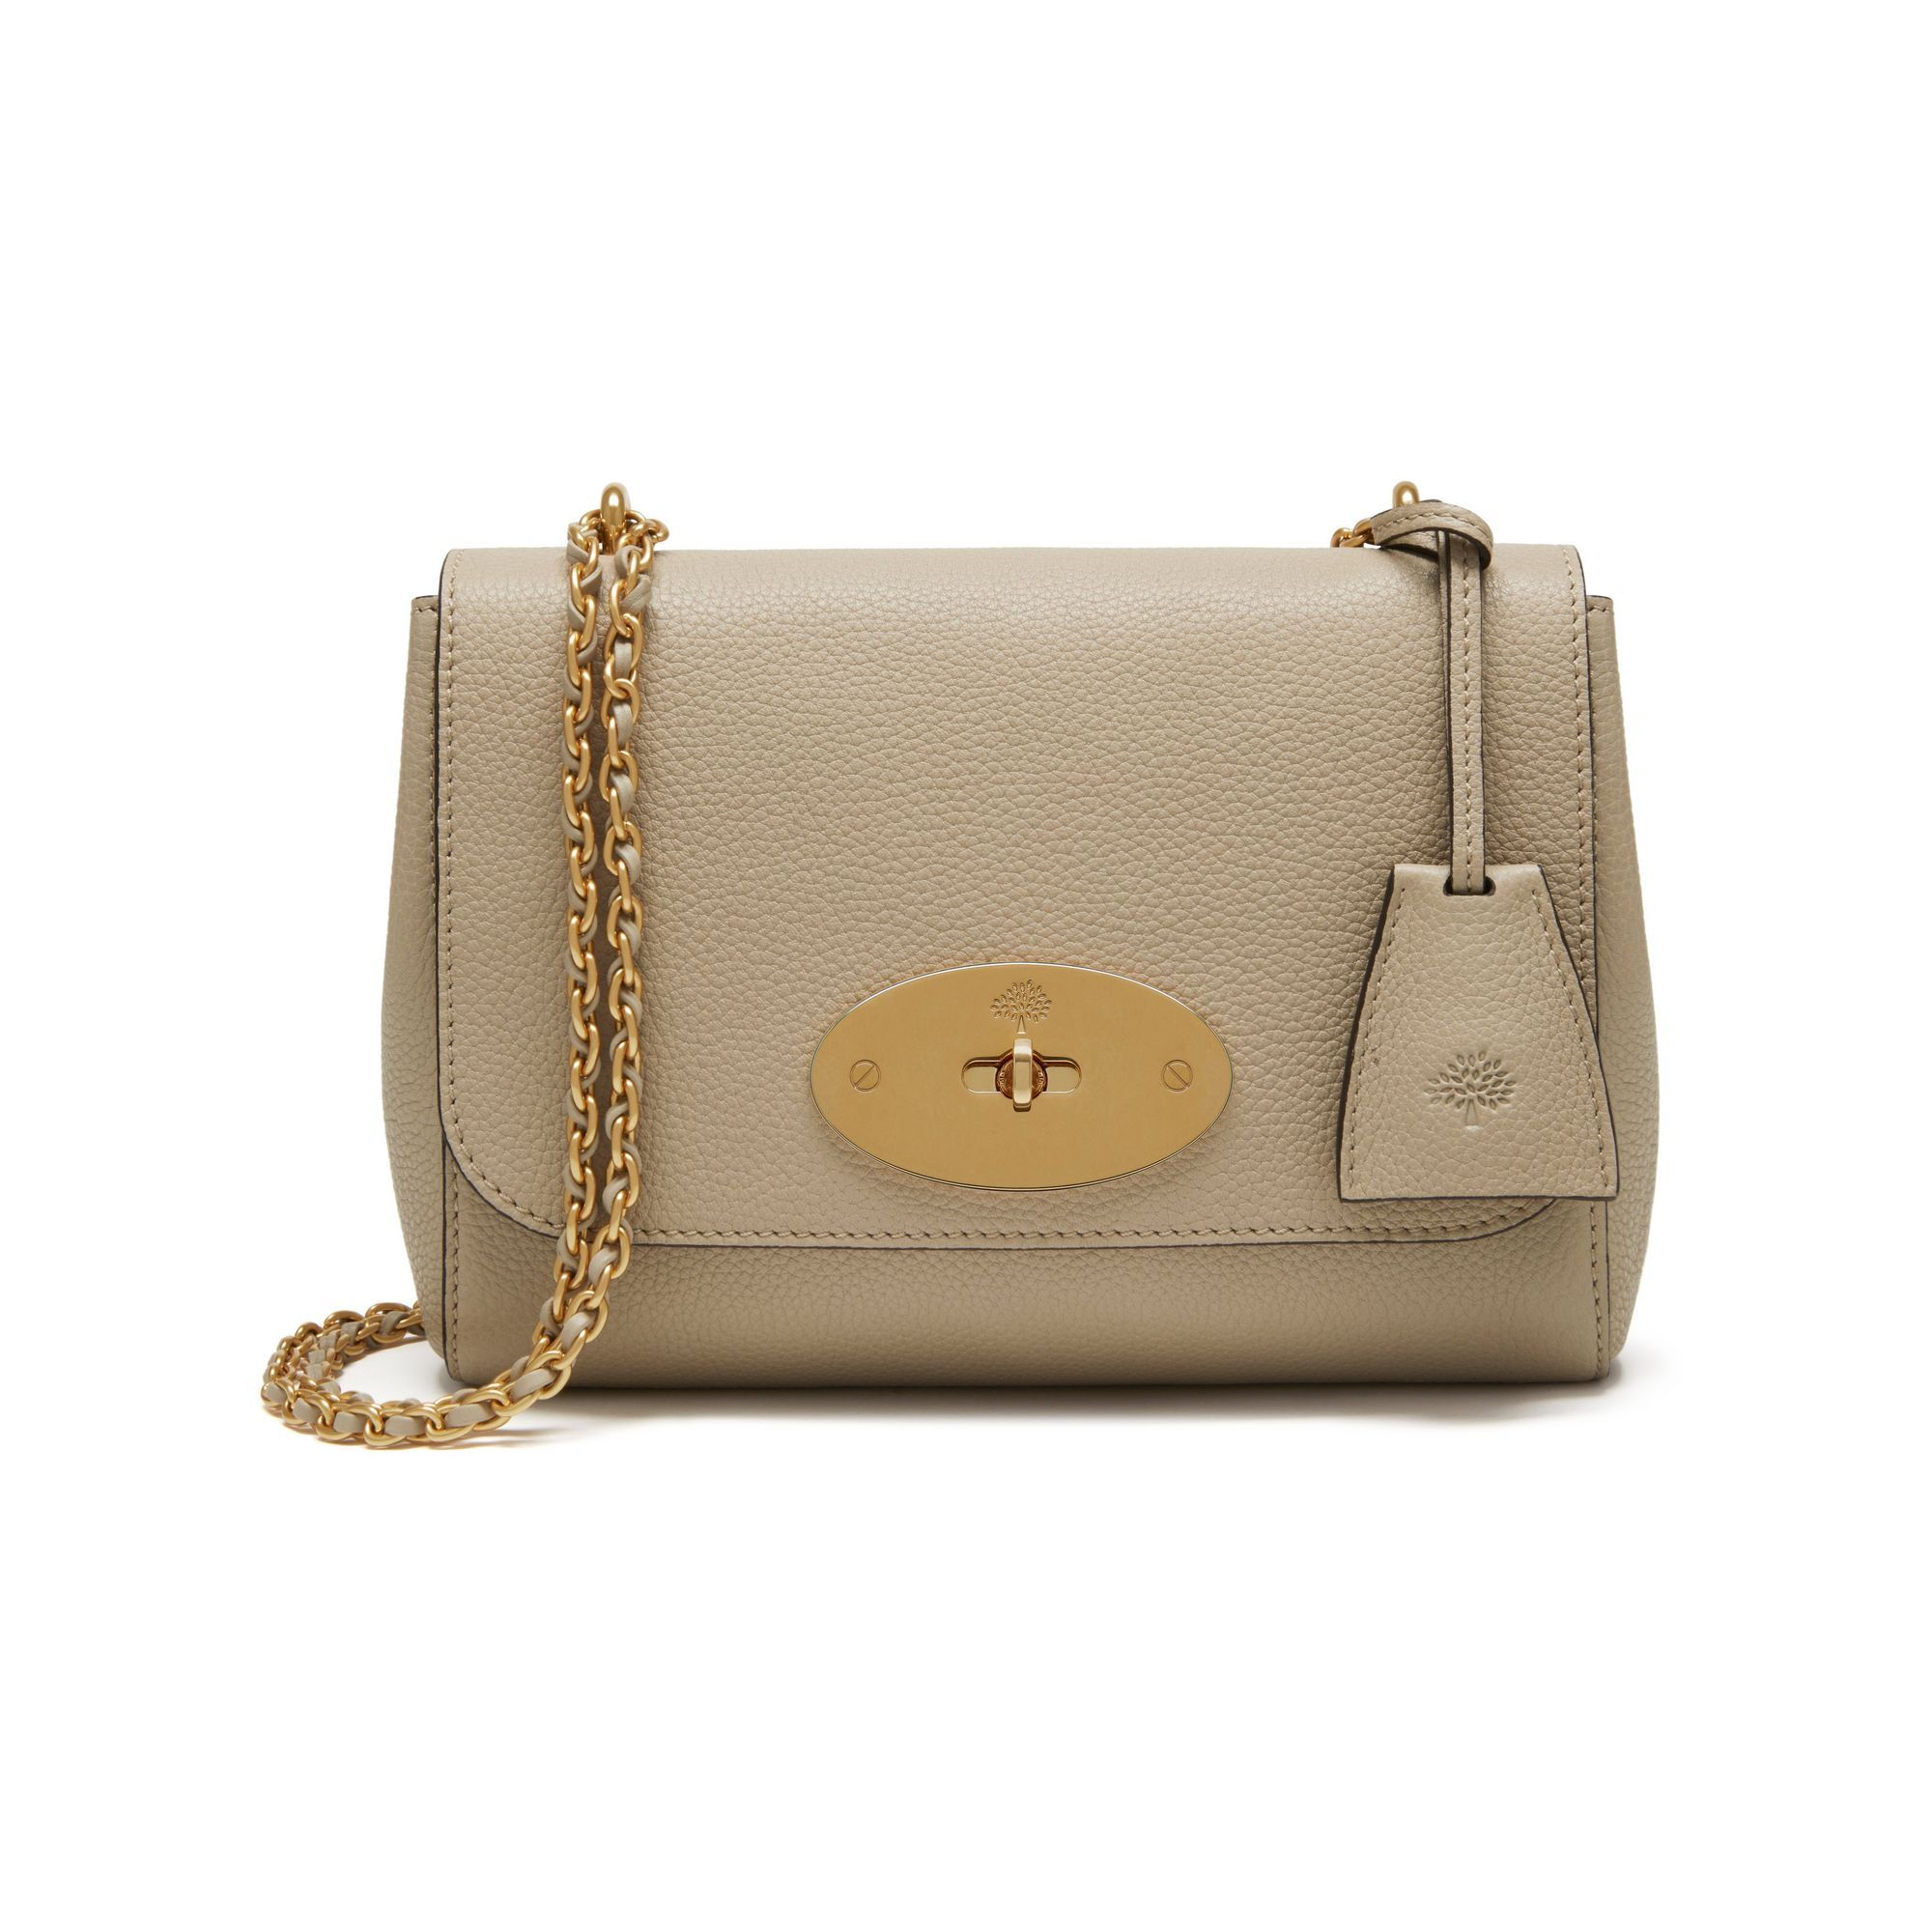 b645ed1b05c Brown Handbags. Paper Bags. Leather Totes. Shop the Lily in Dune Small Classic  Grain at Mulberry.com. The Lily is